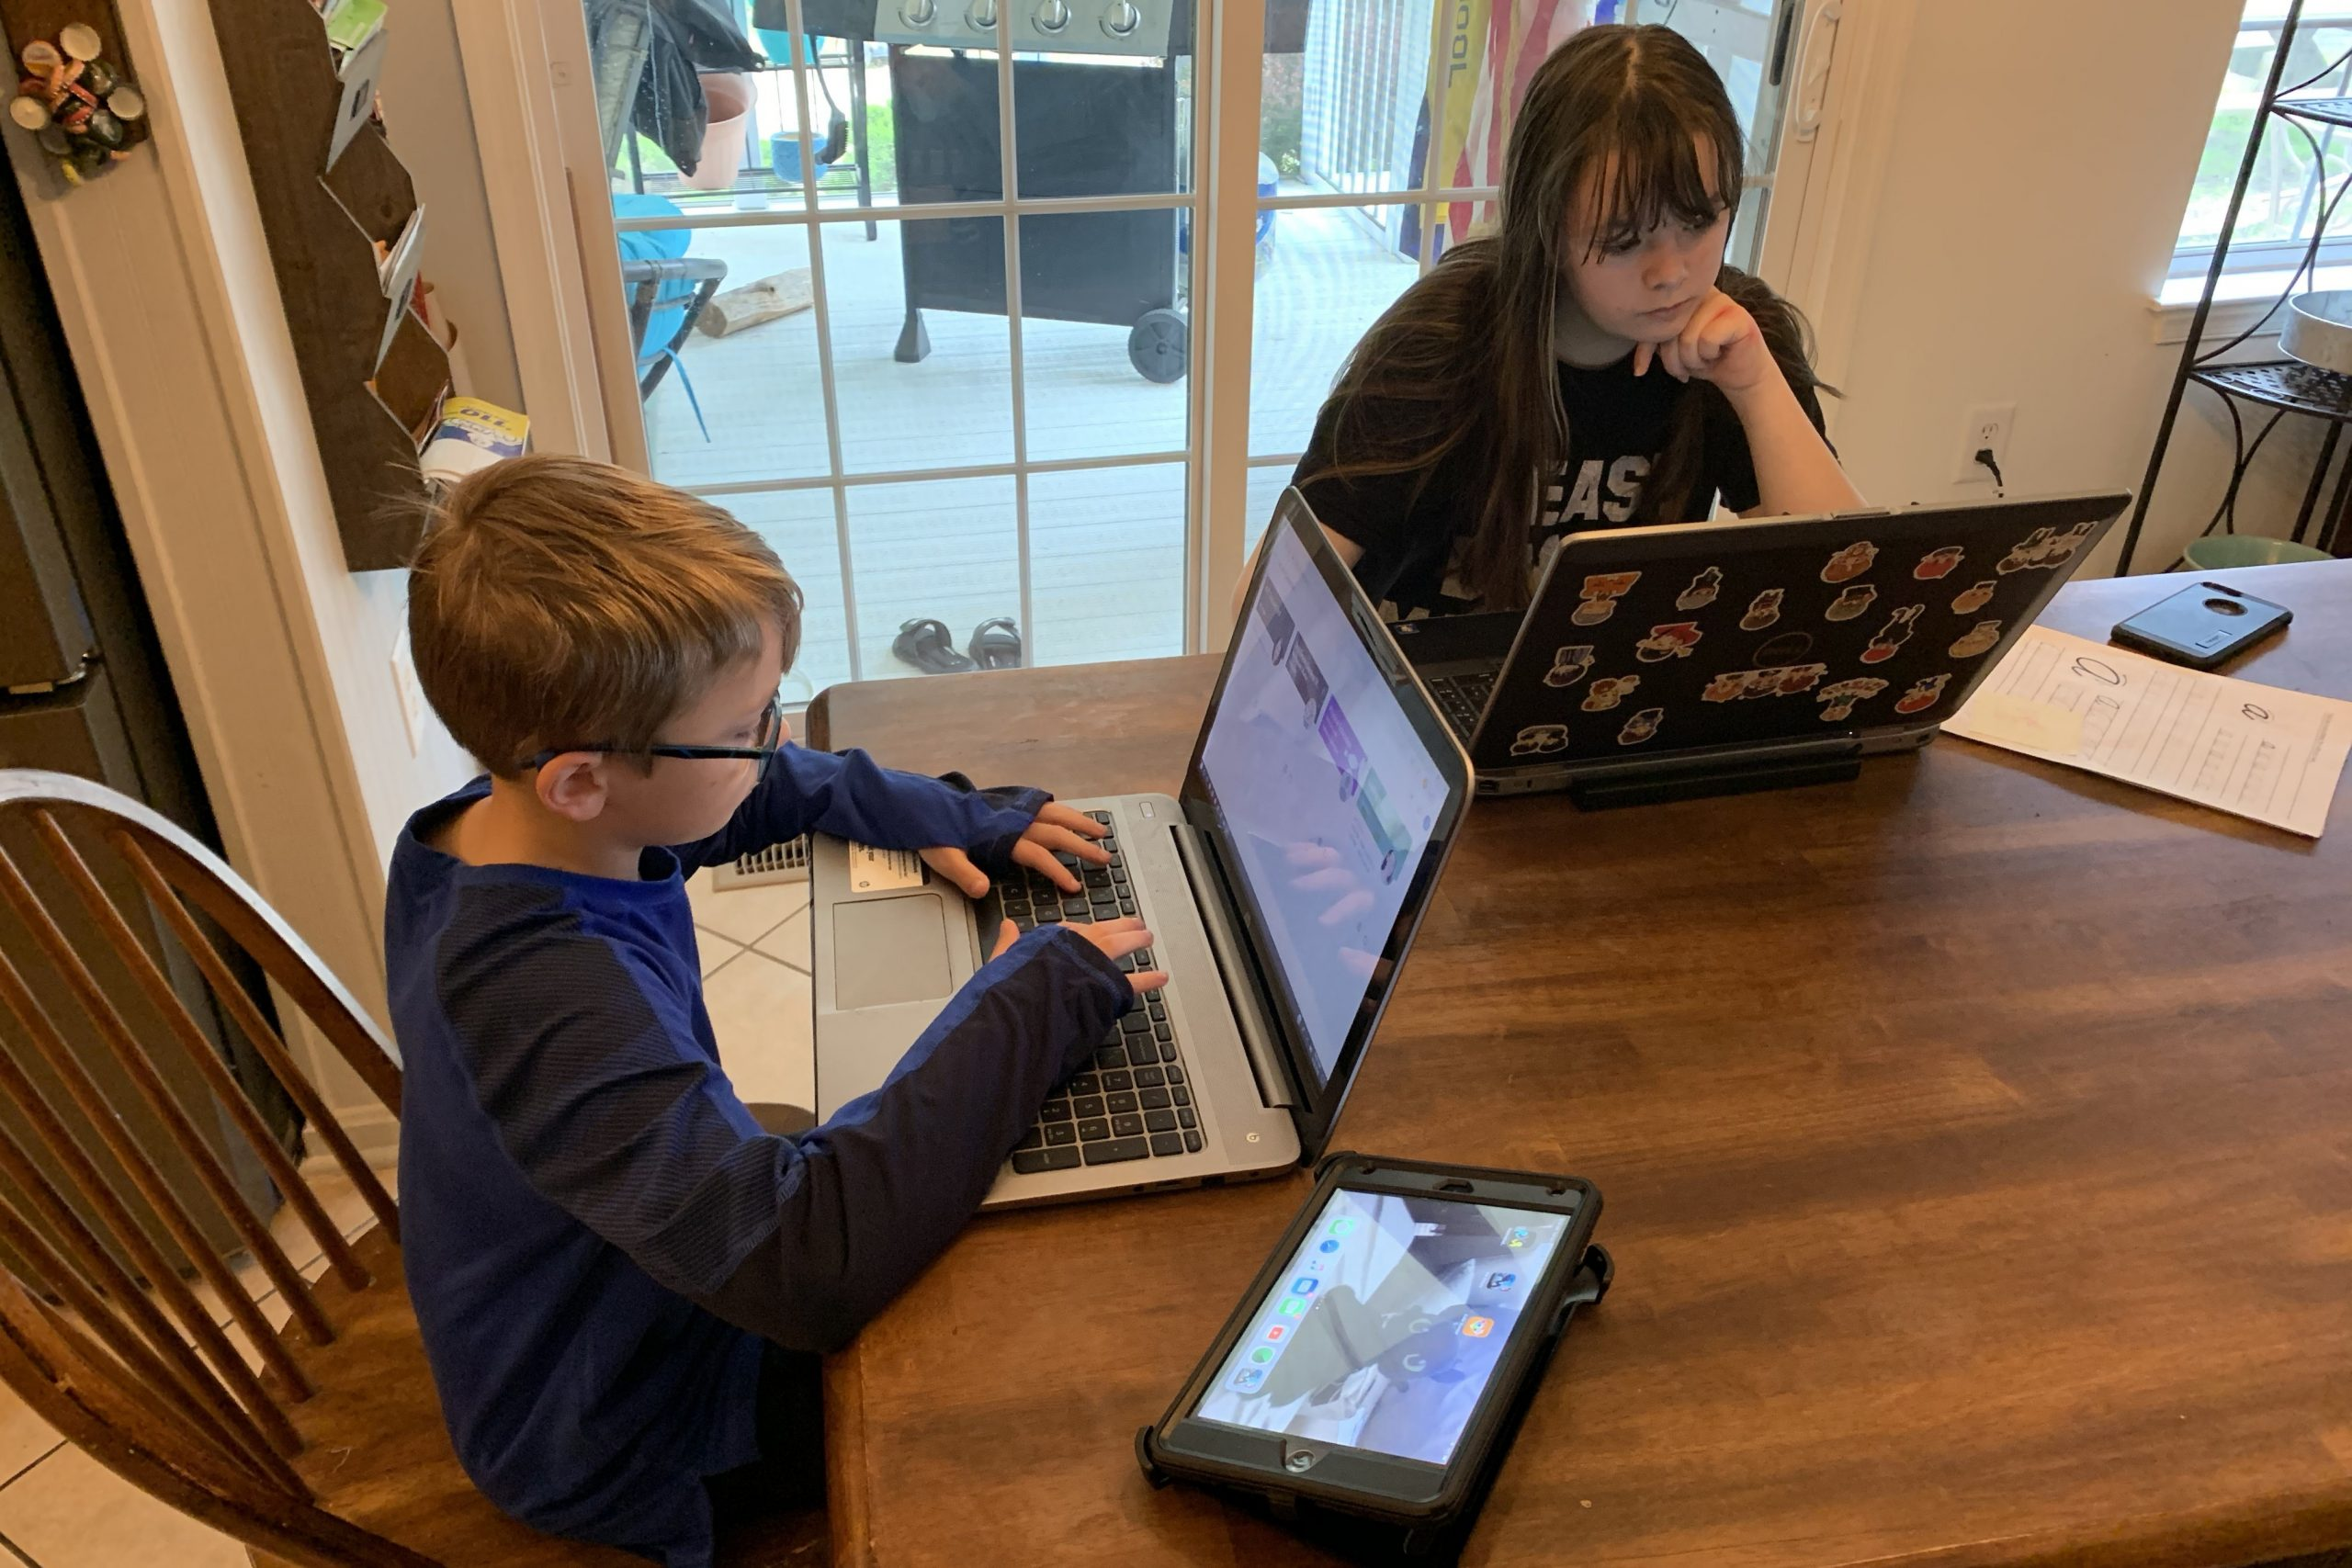 Parents In TN County Told They Must Agree Not to Monitor Children's Virtual Classes ⋆ Activist Mommy